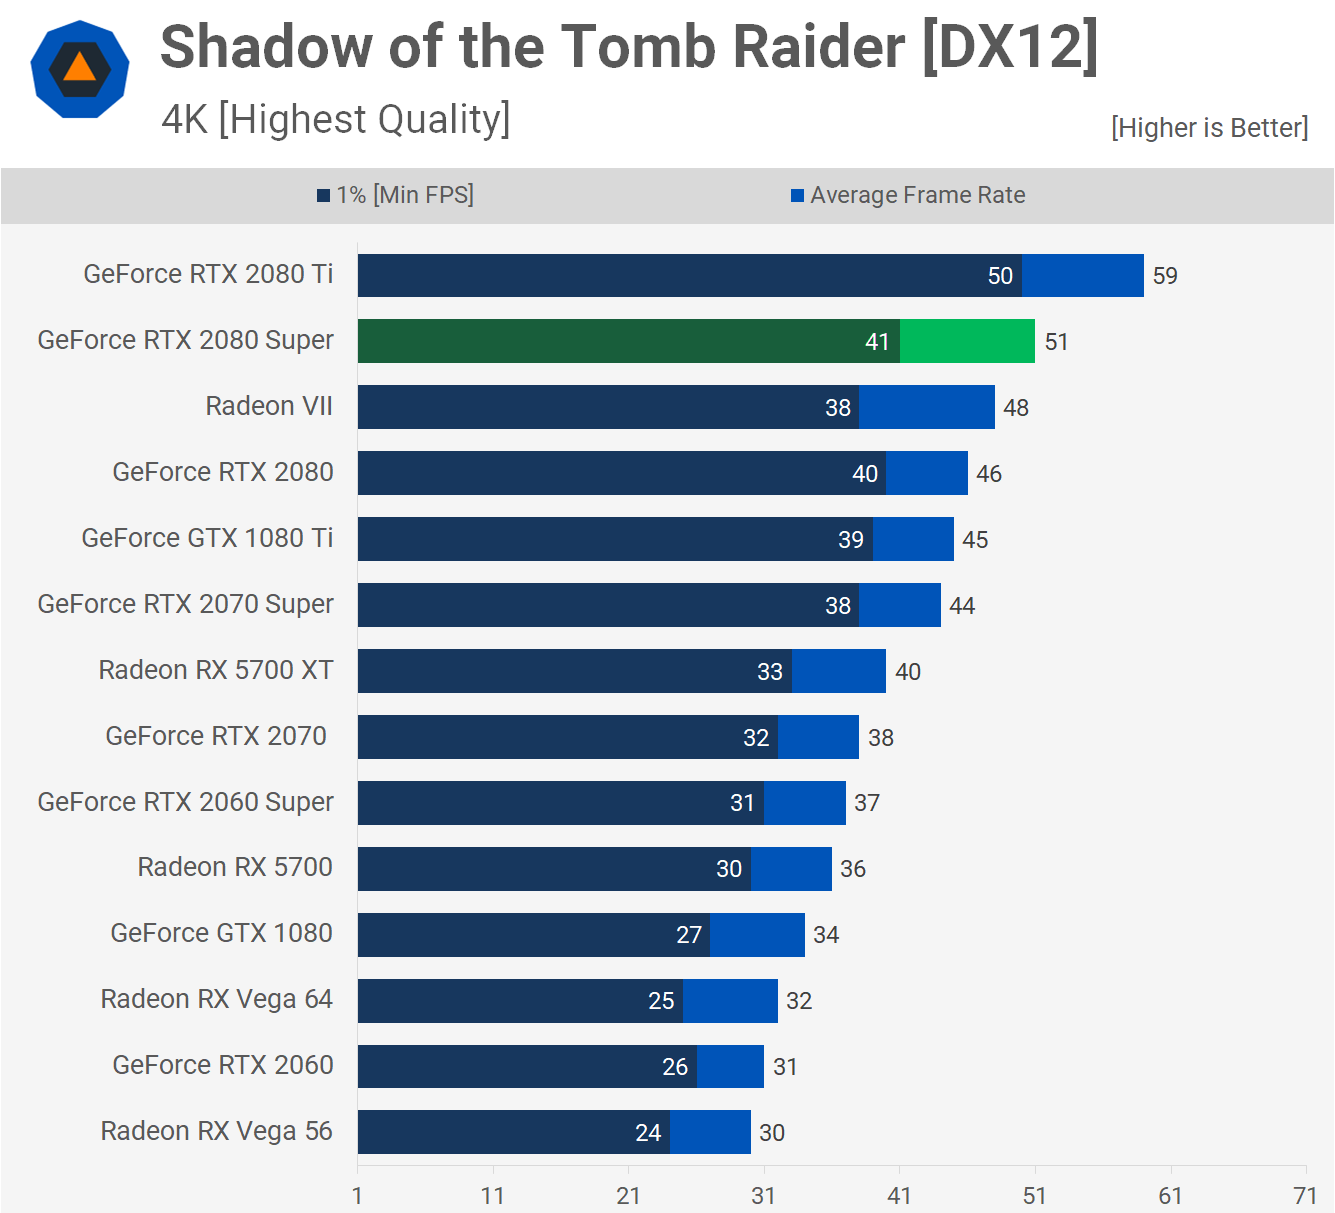 Shadow of the Tomb Raider benchmarks